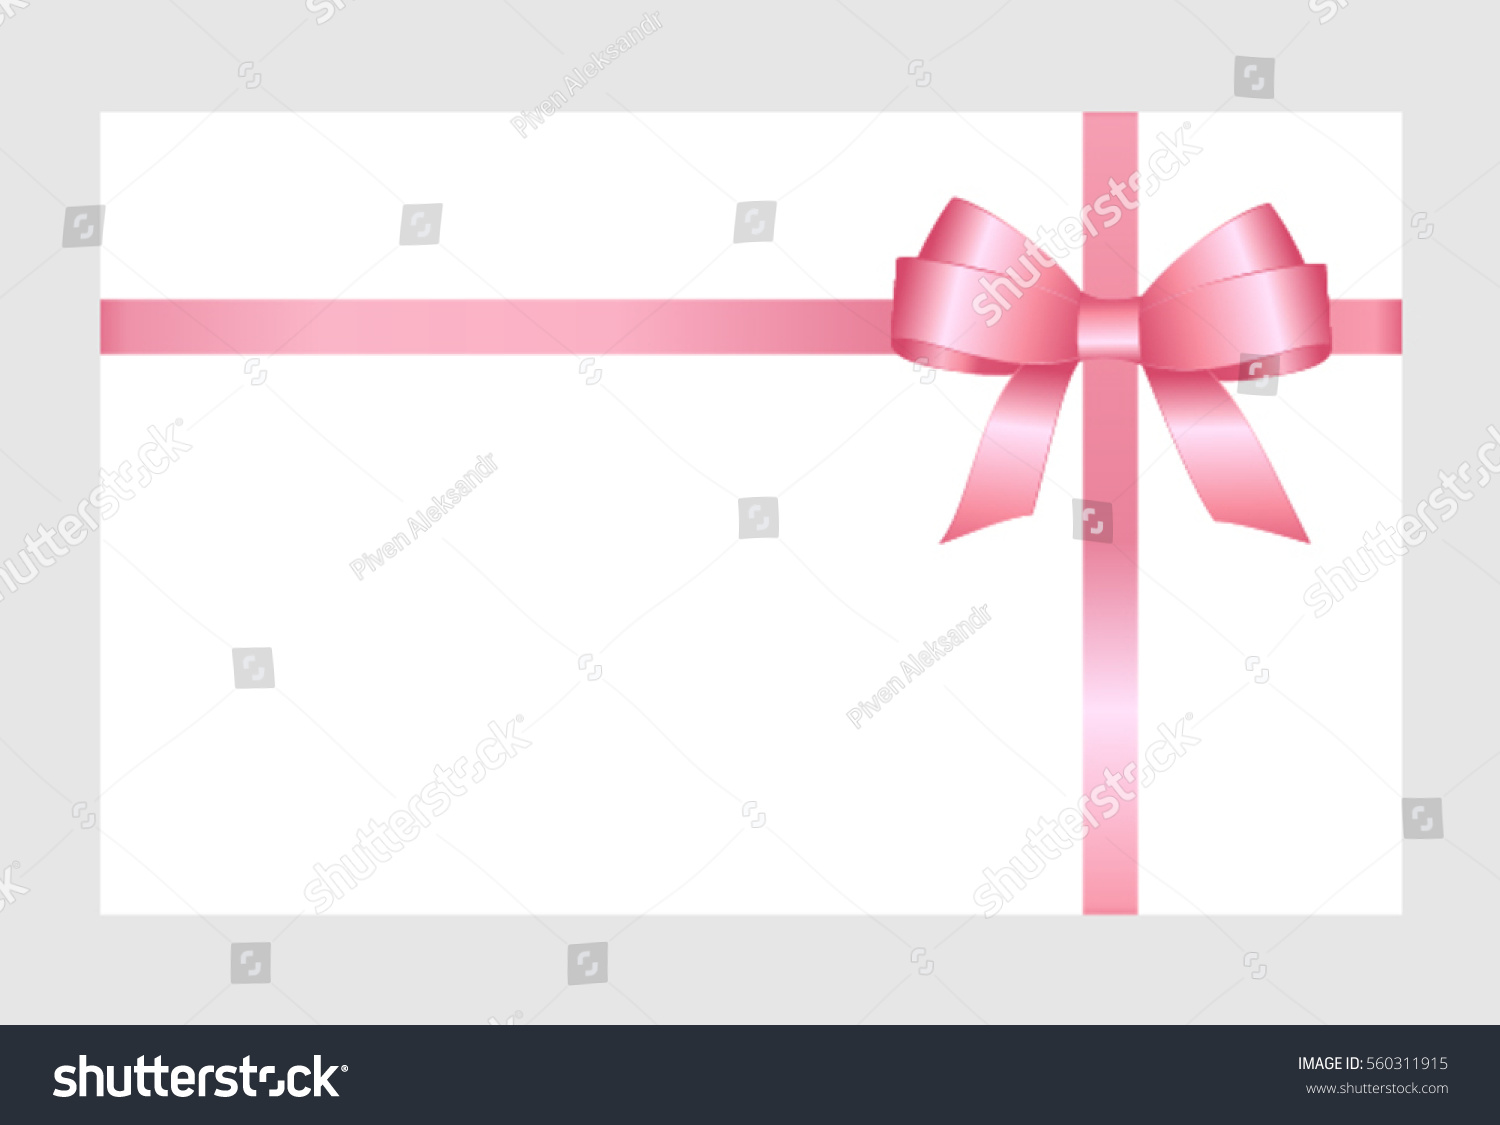 Gift Card Pink Ribbon Bow On Stock Vector Royalty Free 560311915